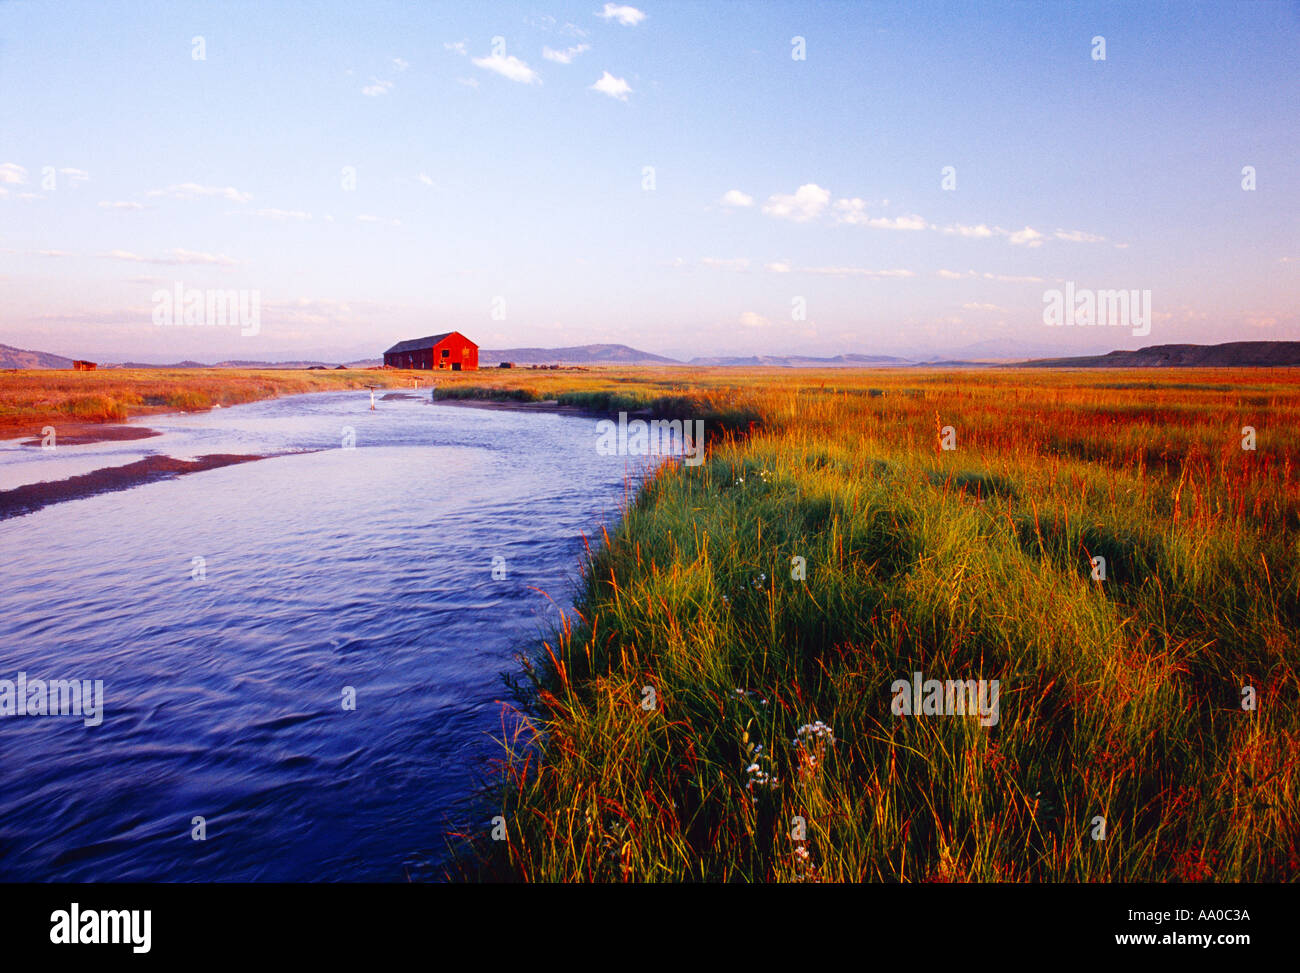 The South Fork of the South Platte River flows through rich pastureland with a rustic red barn in the background / Colorado, USA - Stock Image